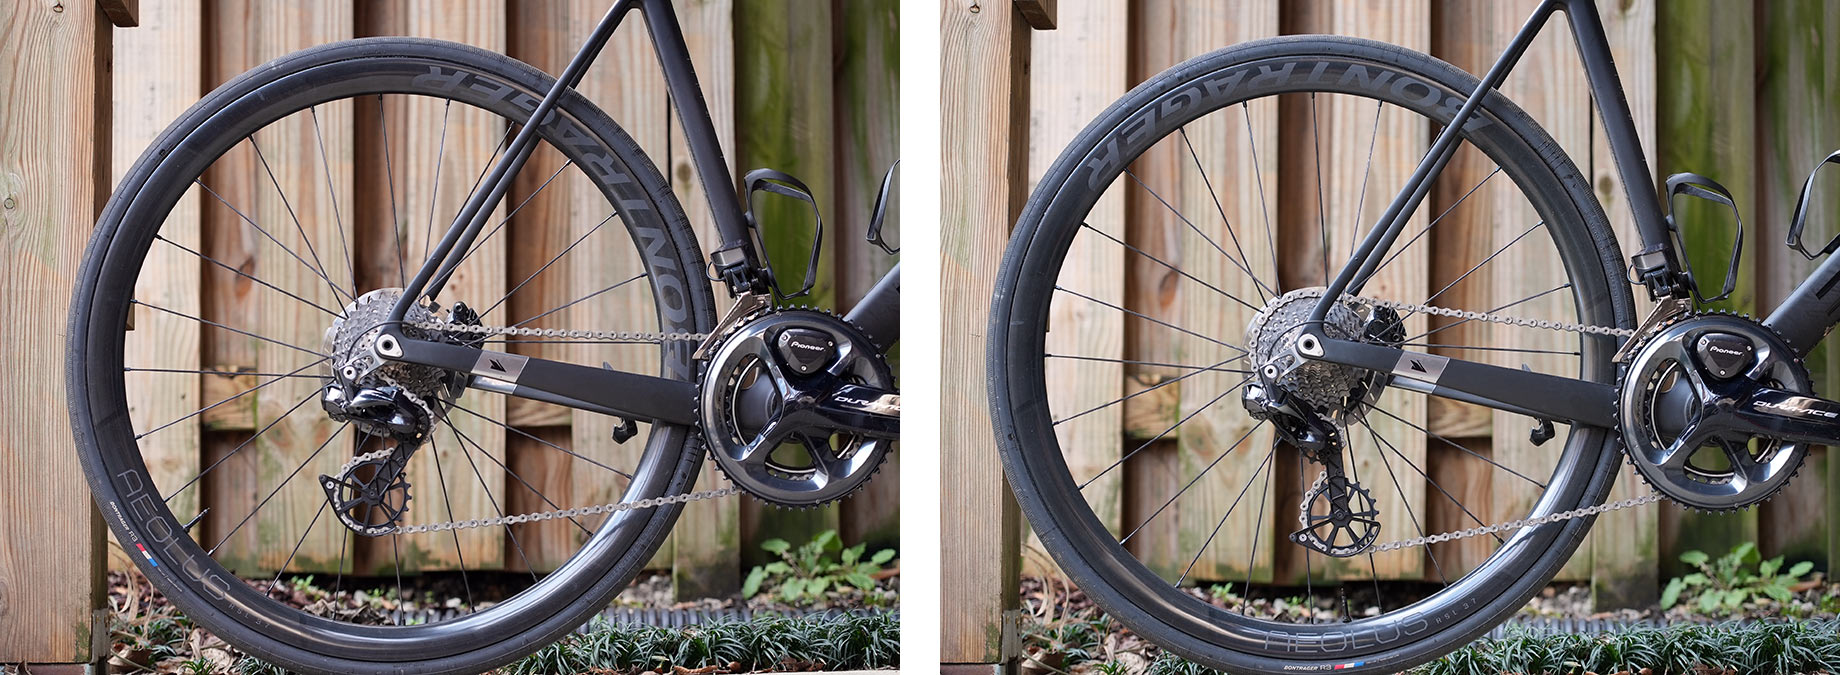 chain length and derailleur position comparison after installing an oversize pulley cage